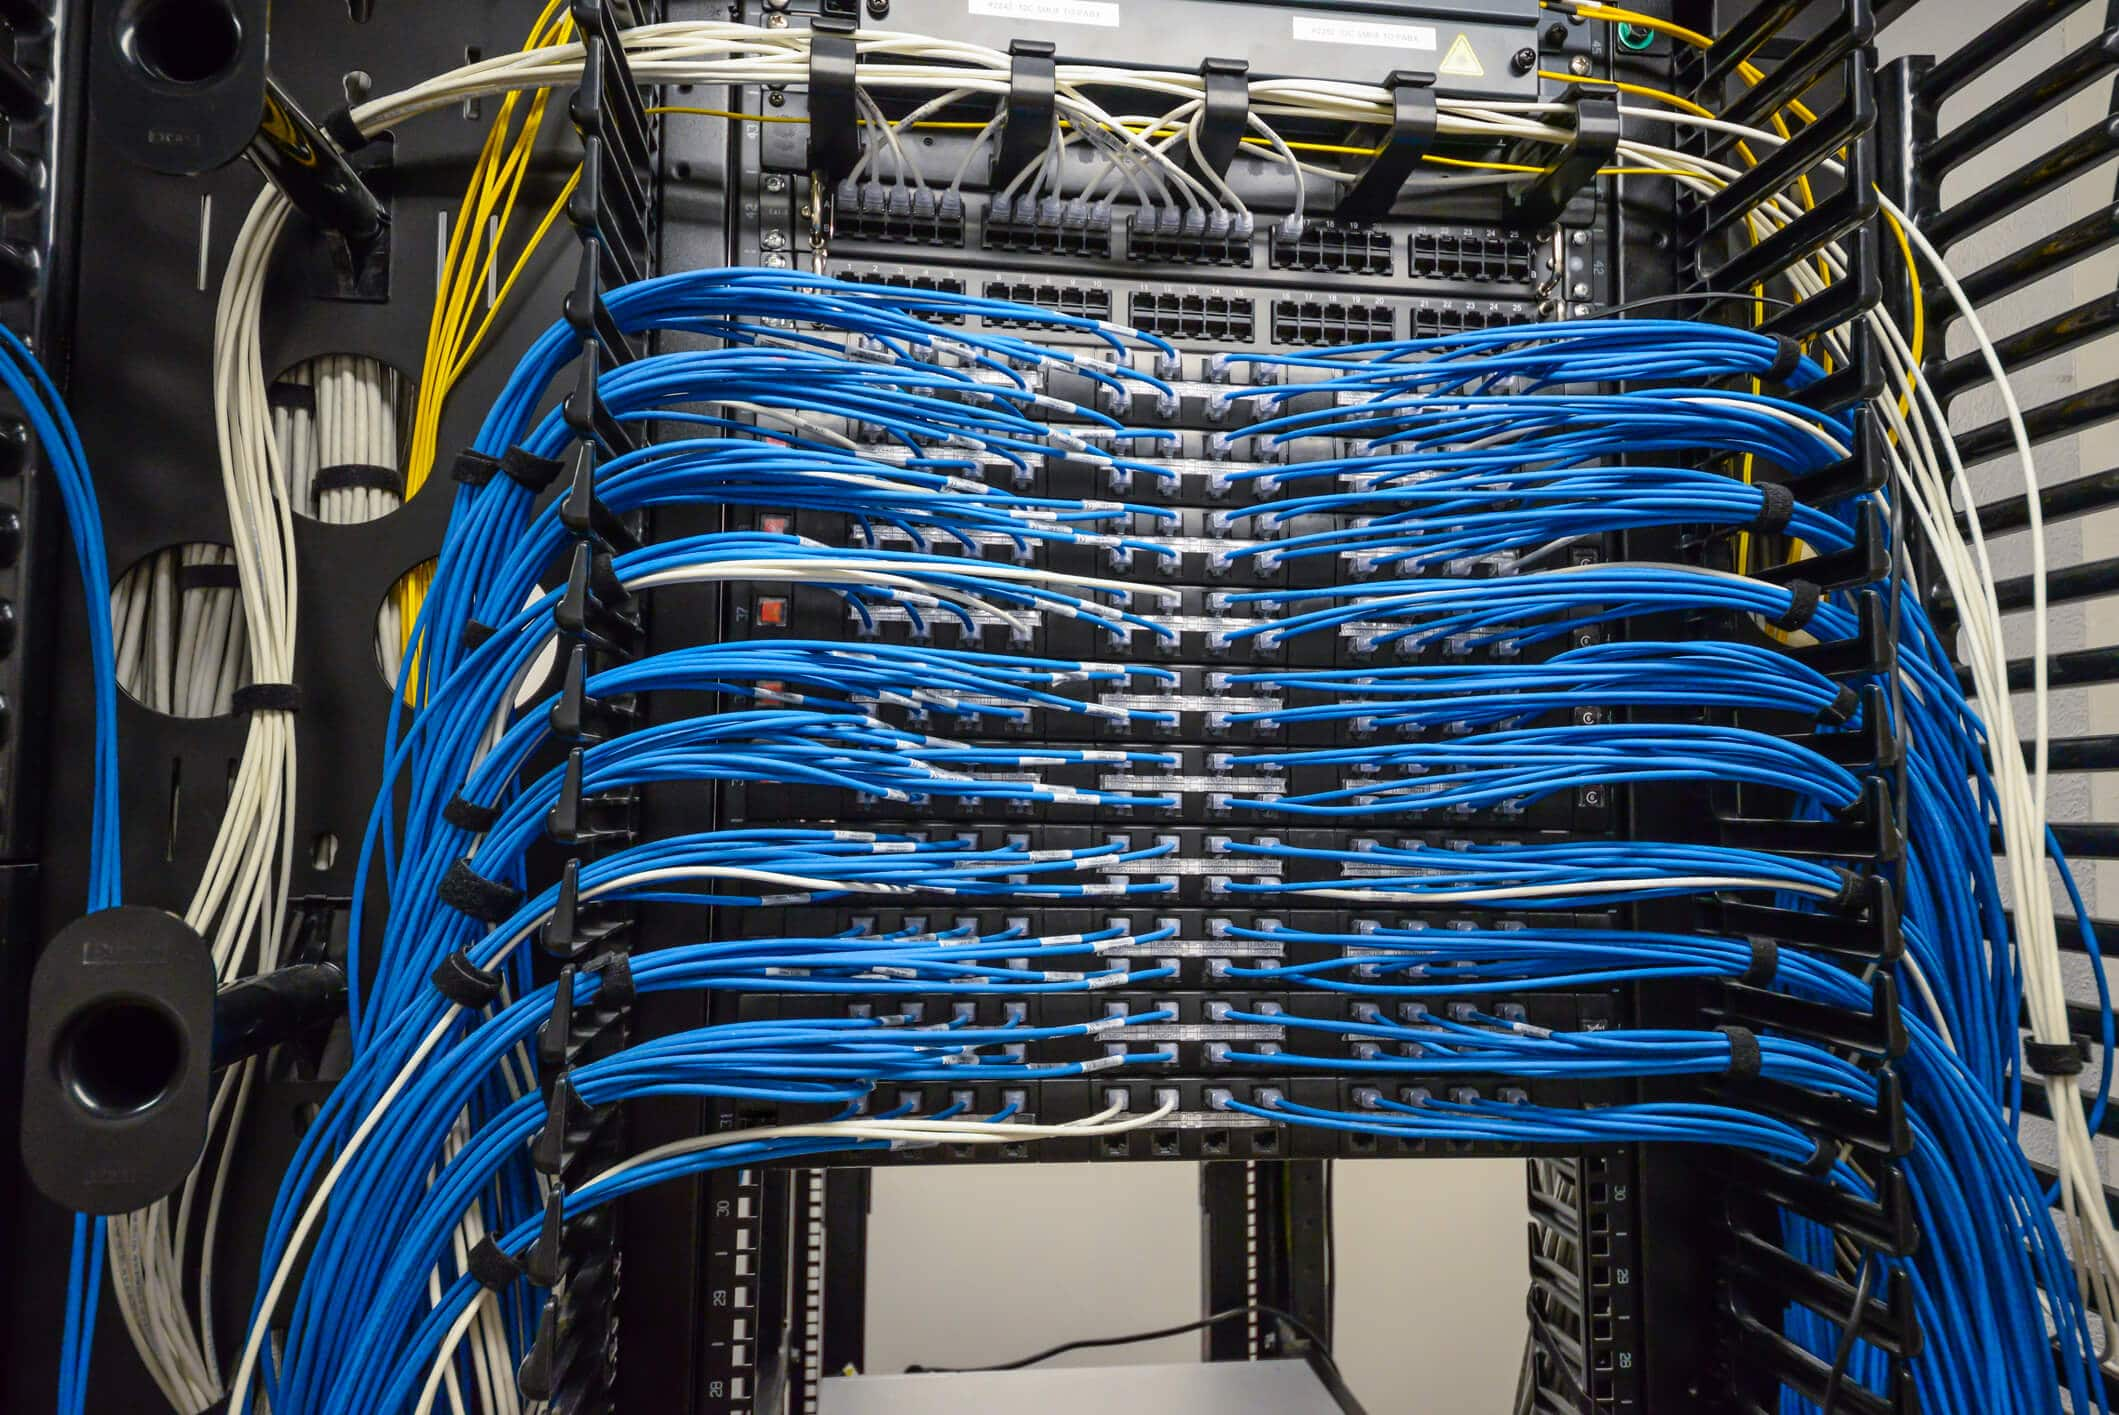 Server network cables photo